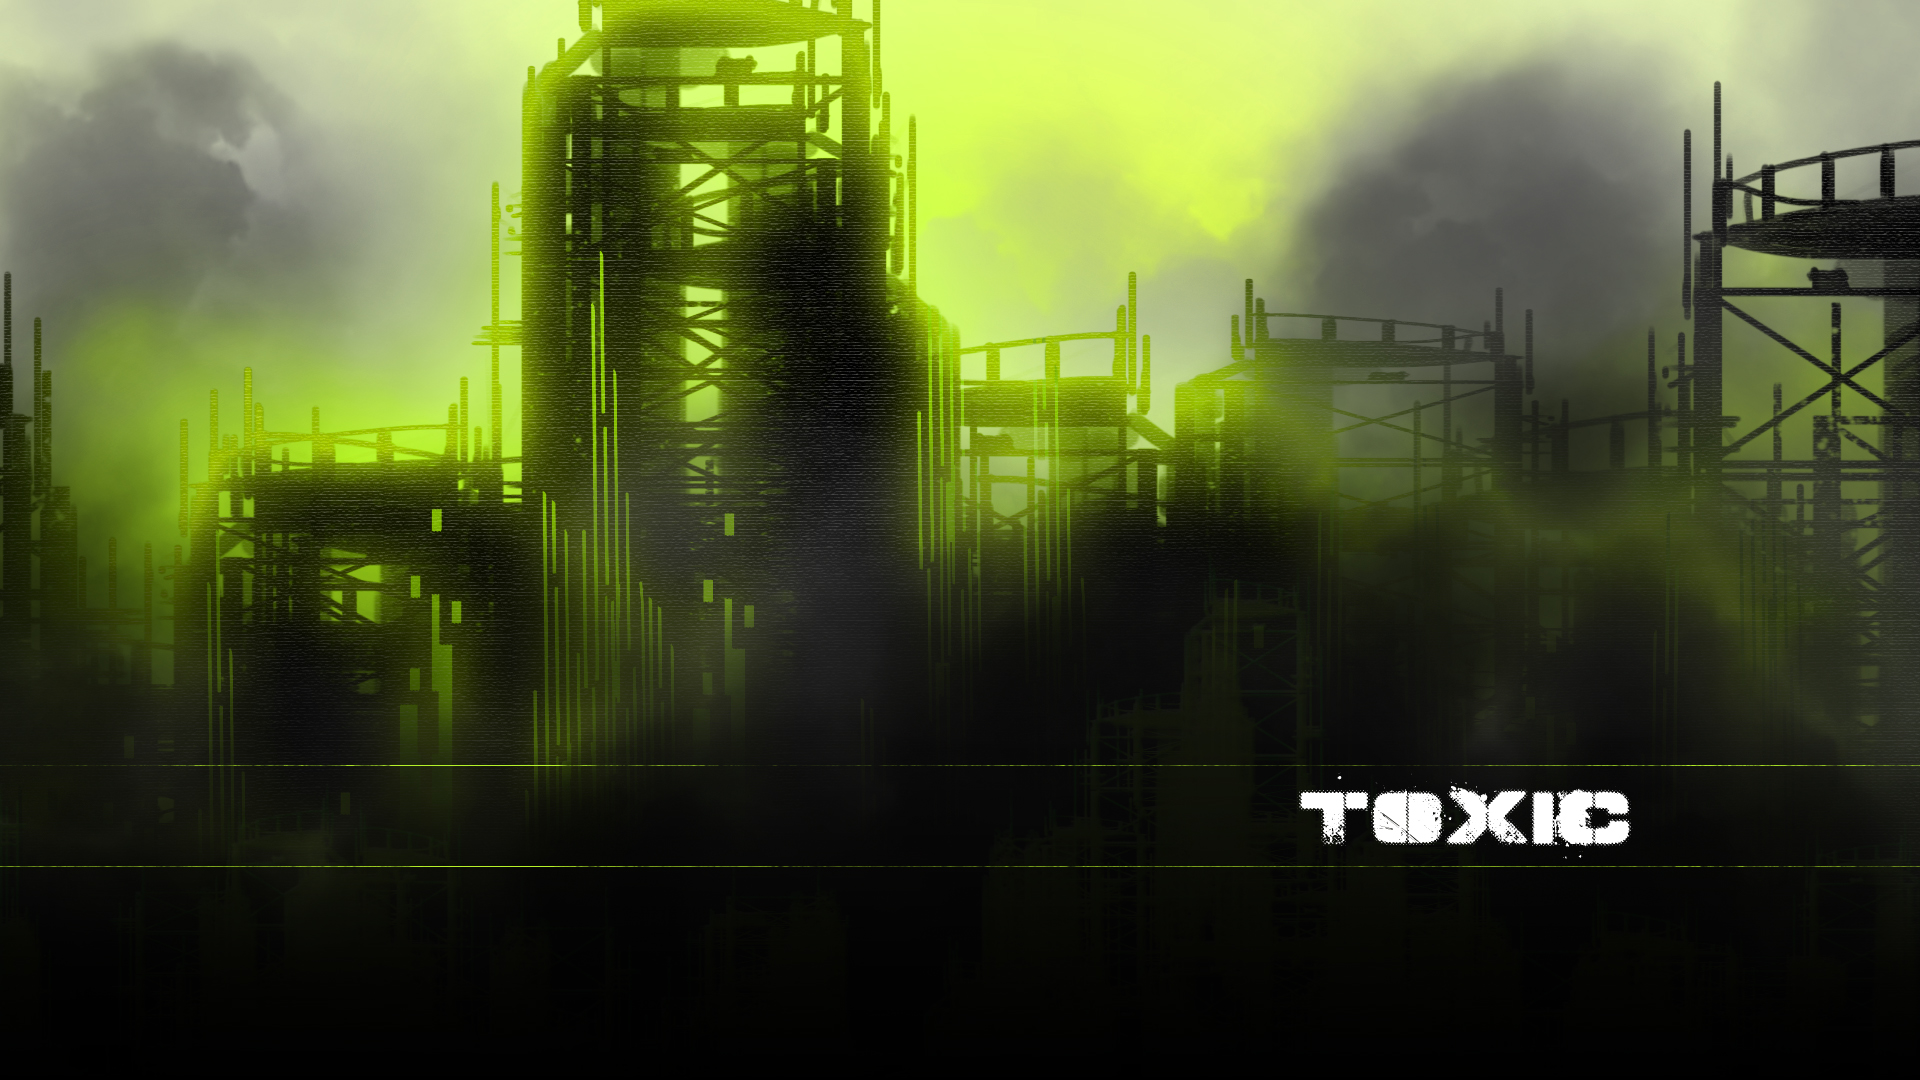 Toxic by CodenameOXIDE